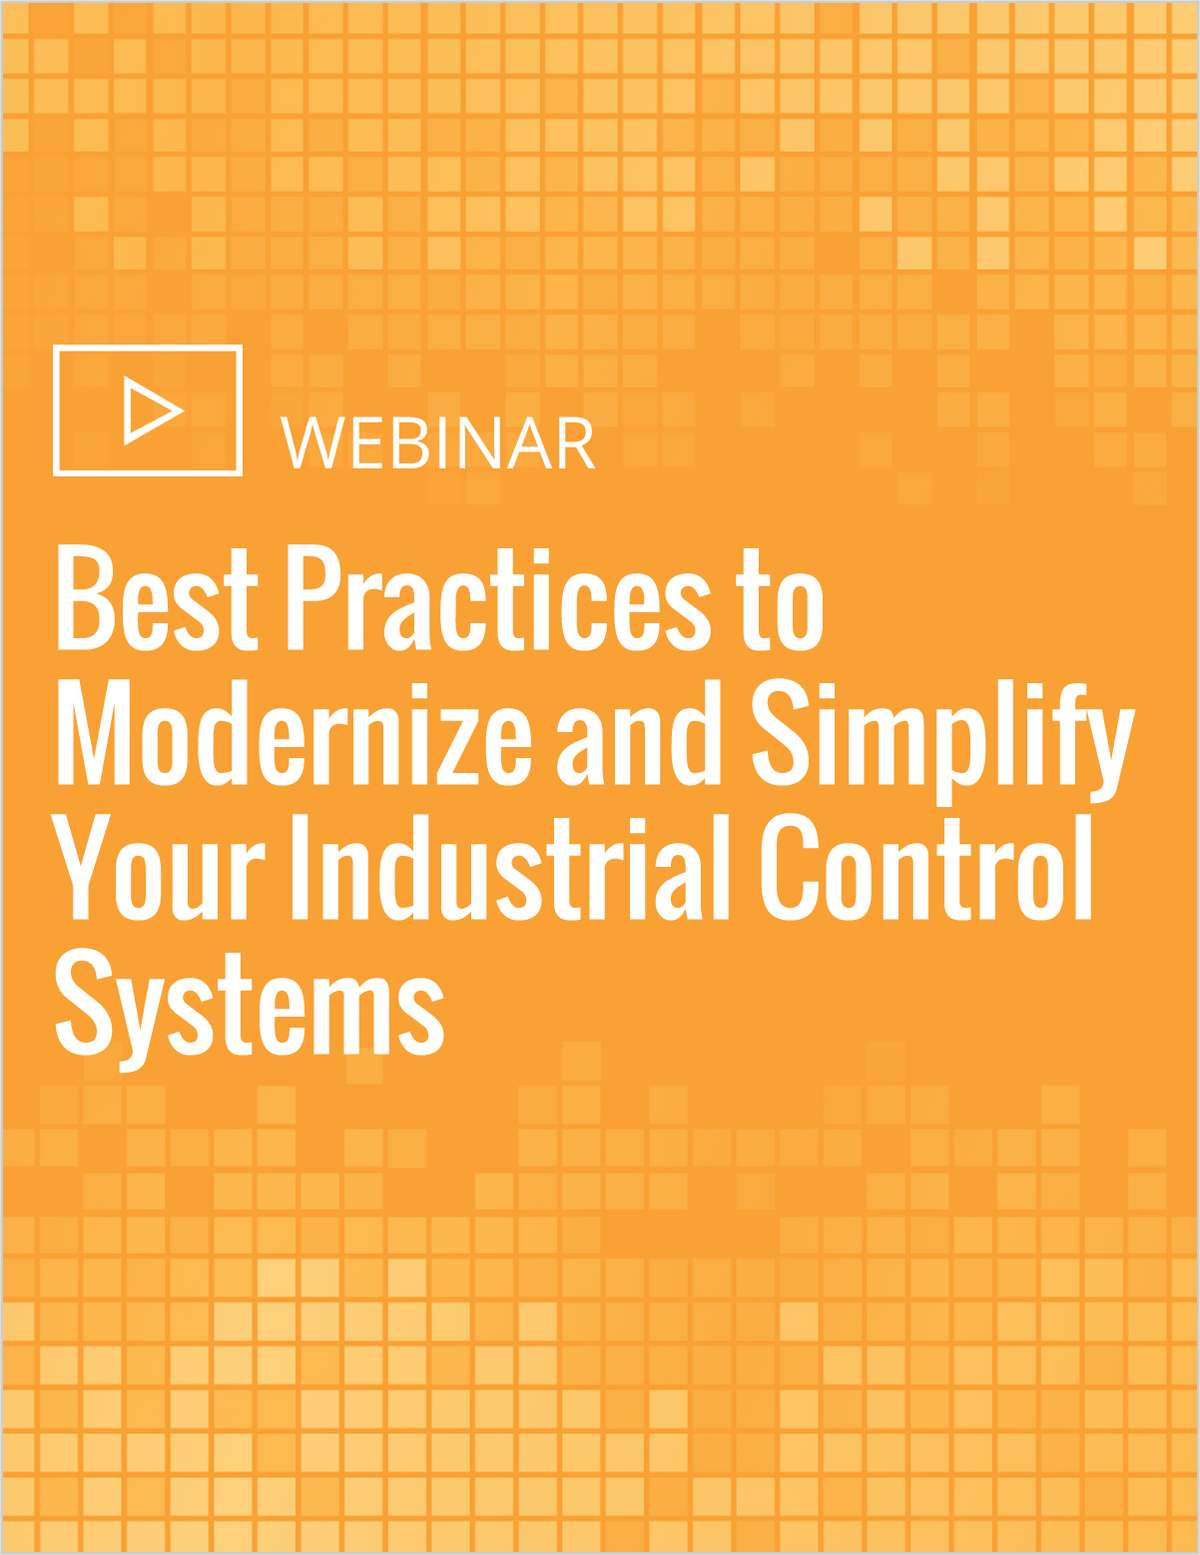 Best Practices to Modernize and Simplify Your Industrial Control Systems